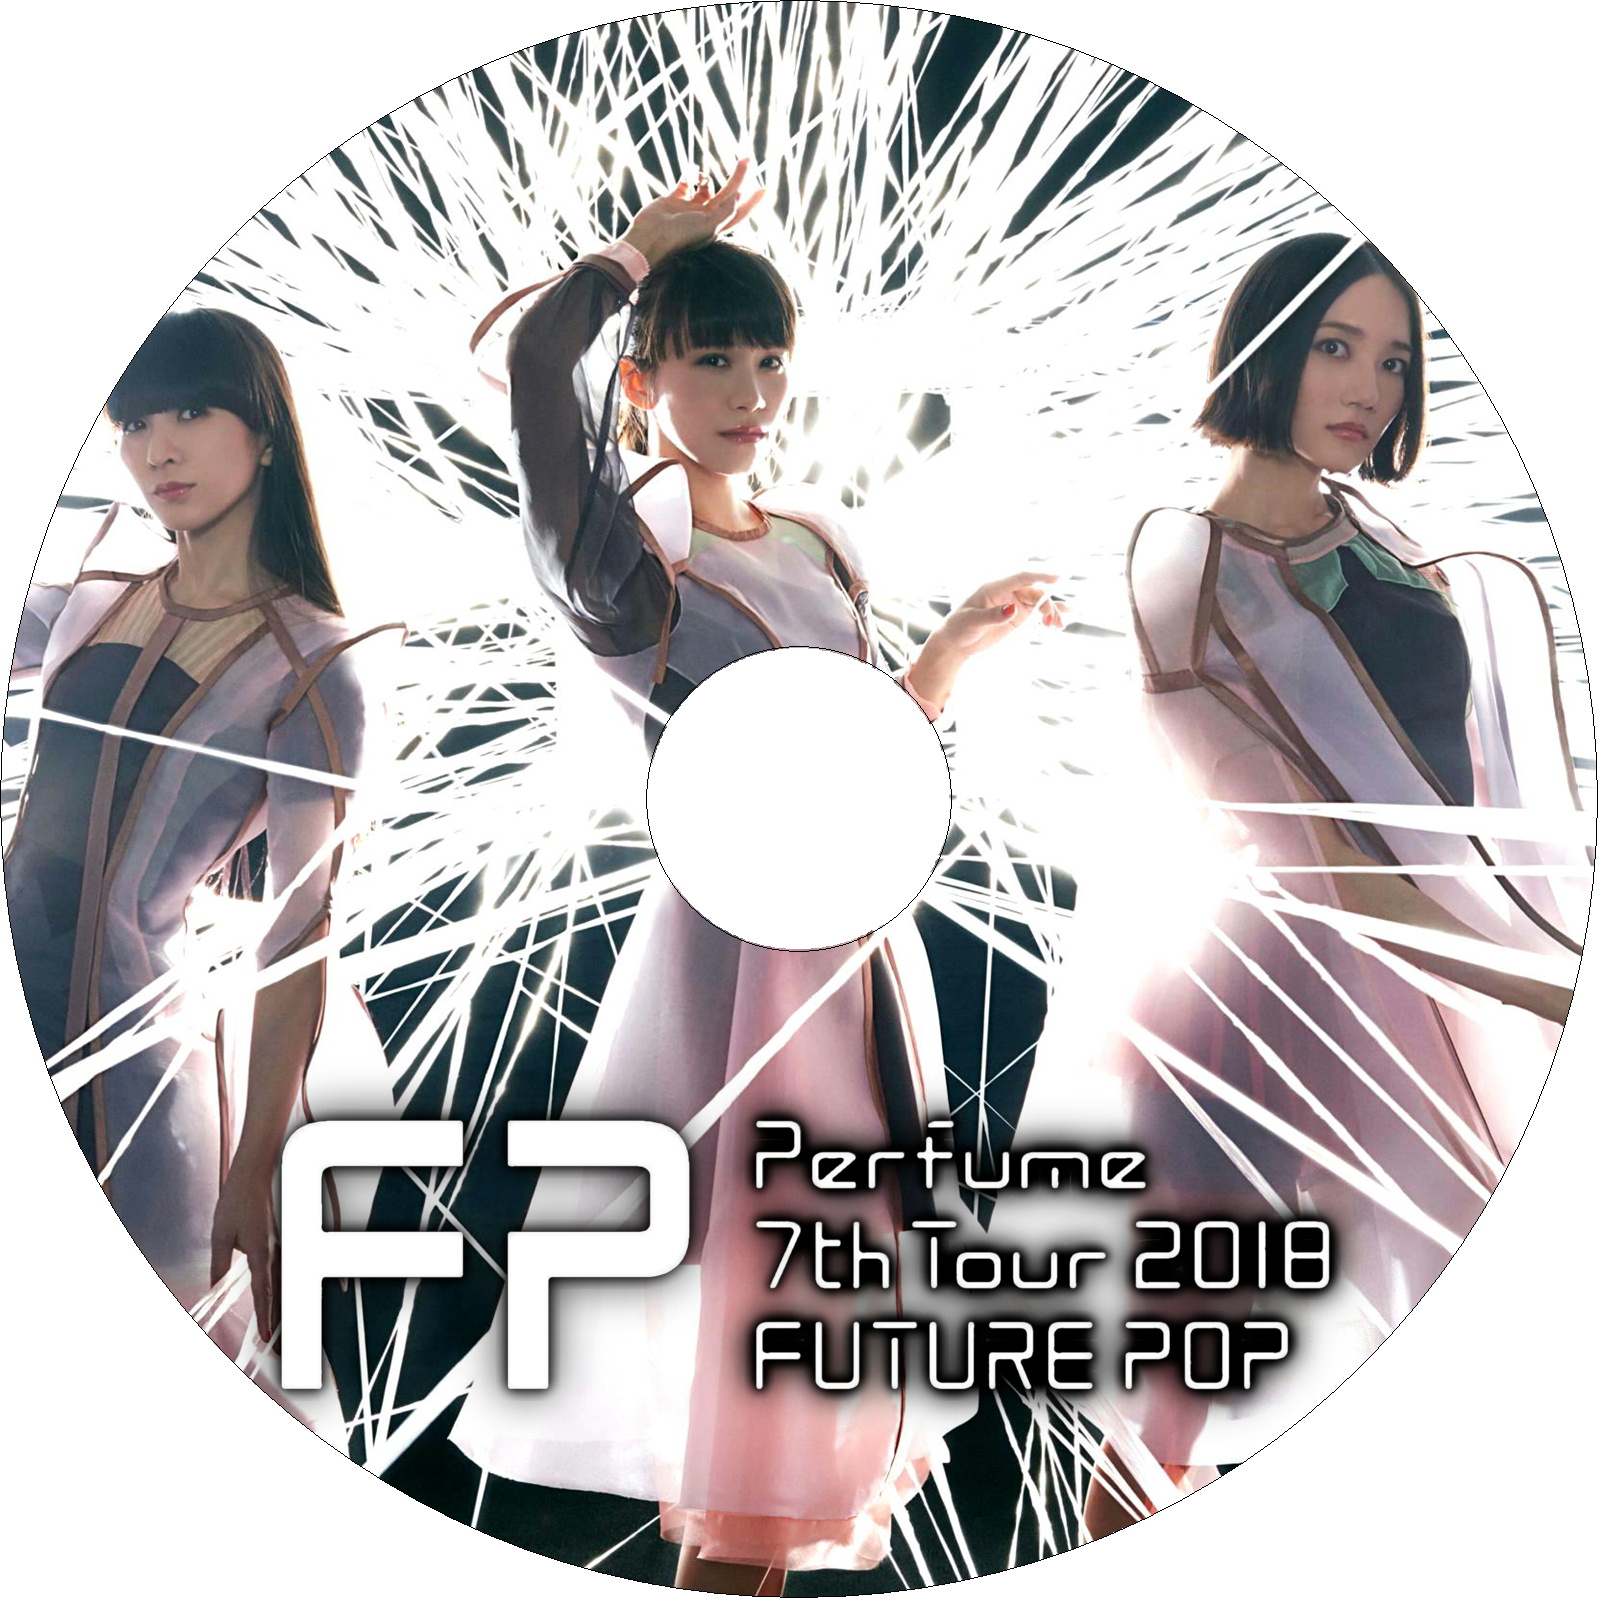 Perfume 7th Tour 2018 「FUTURE POP」 ラベル